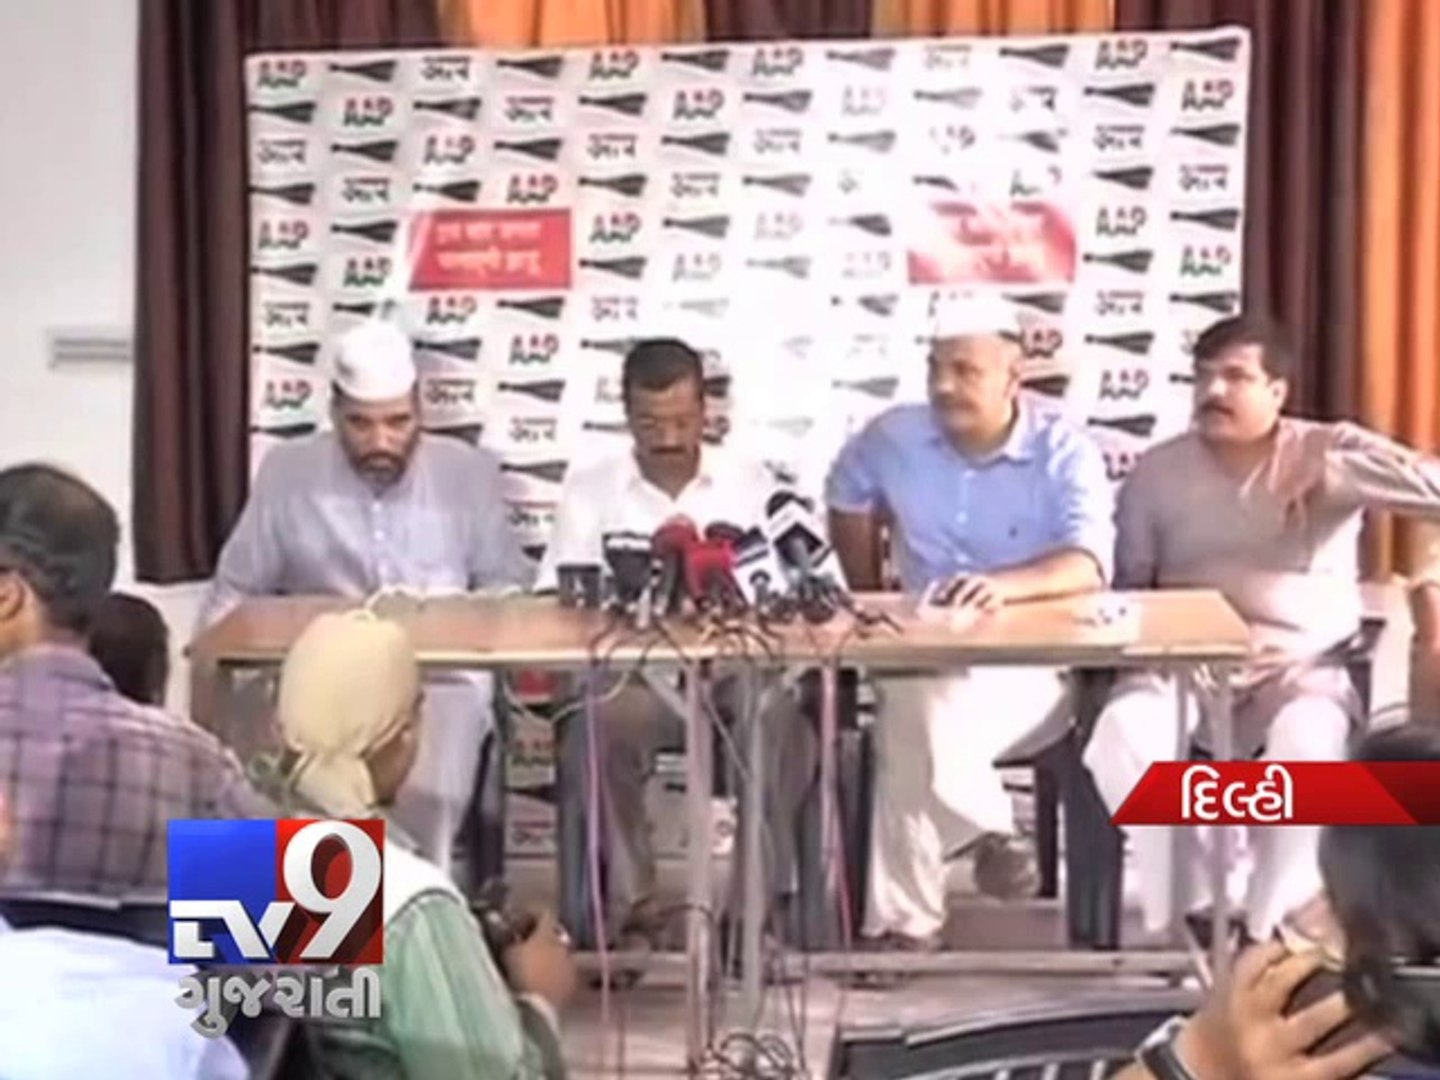 AAP's sting dims chances of new delhi govt without re-poll - Tv9 Gujarati